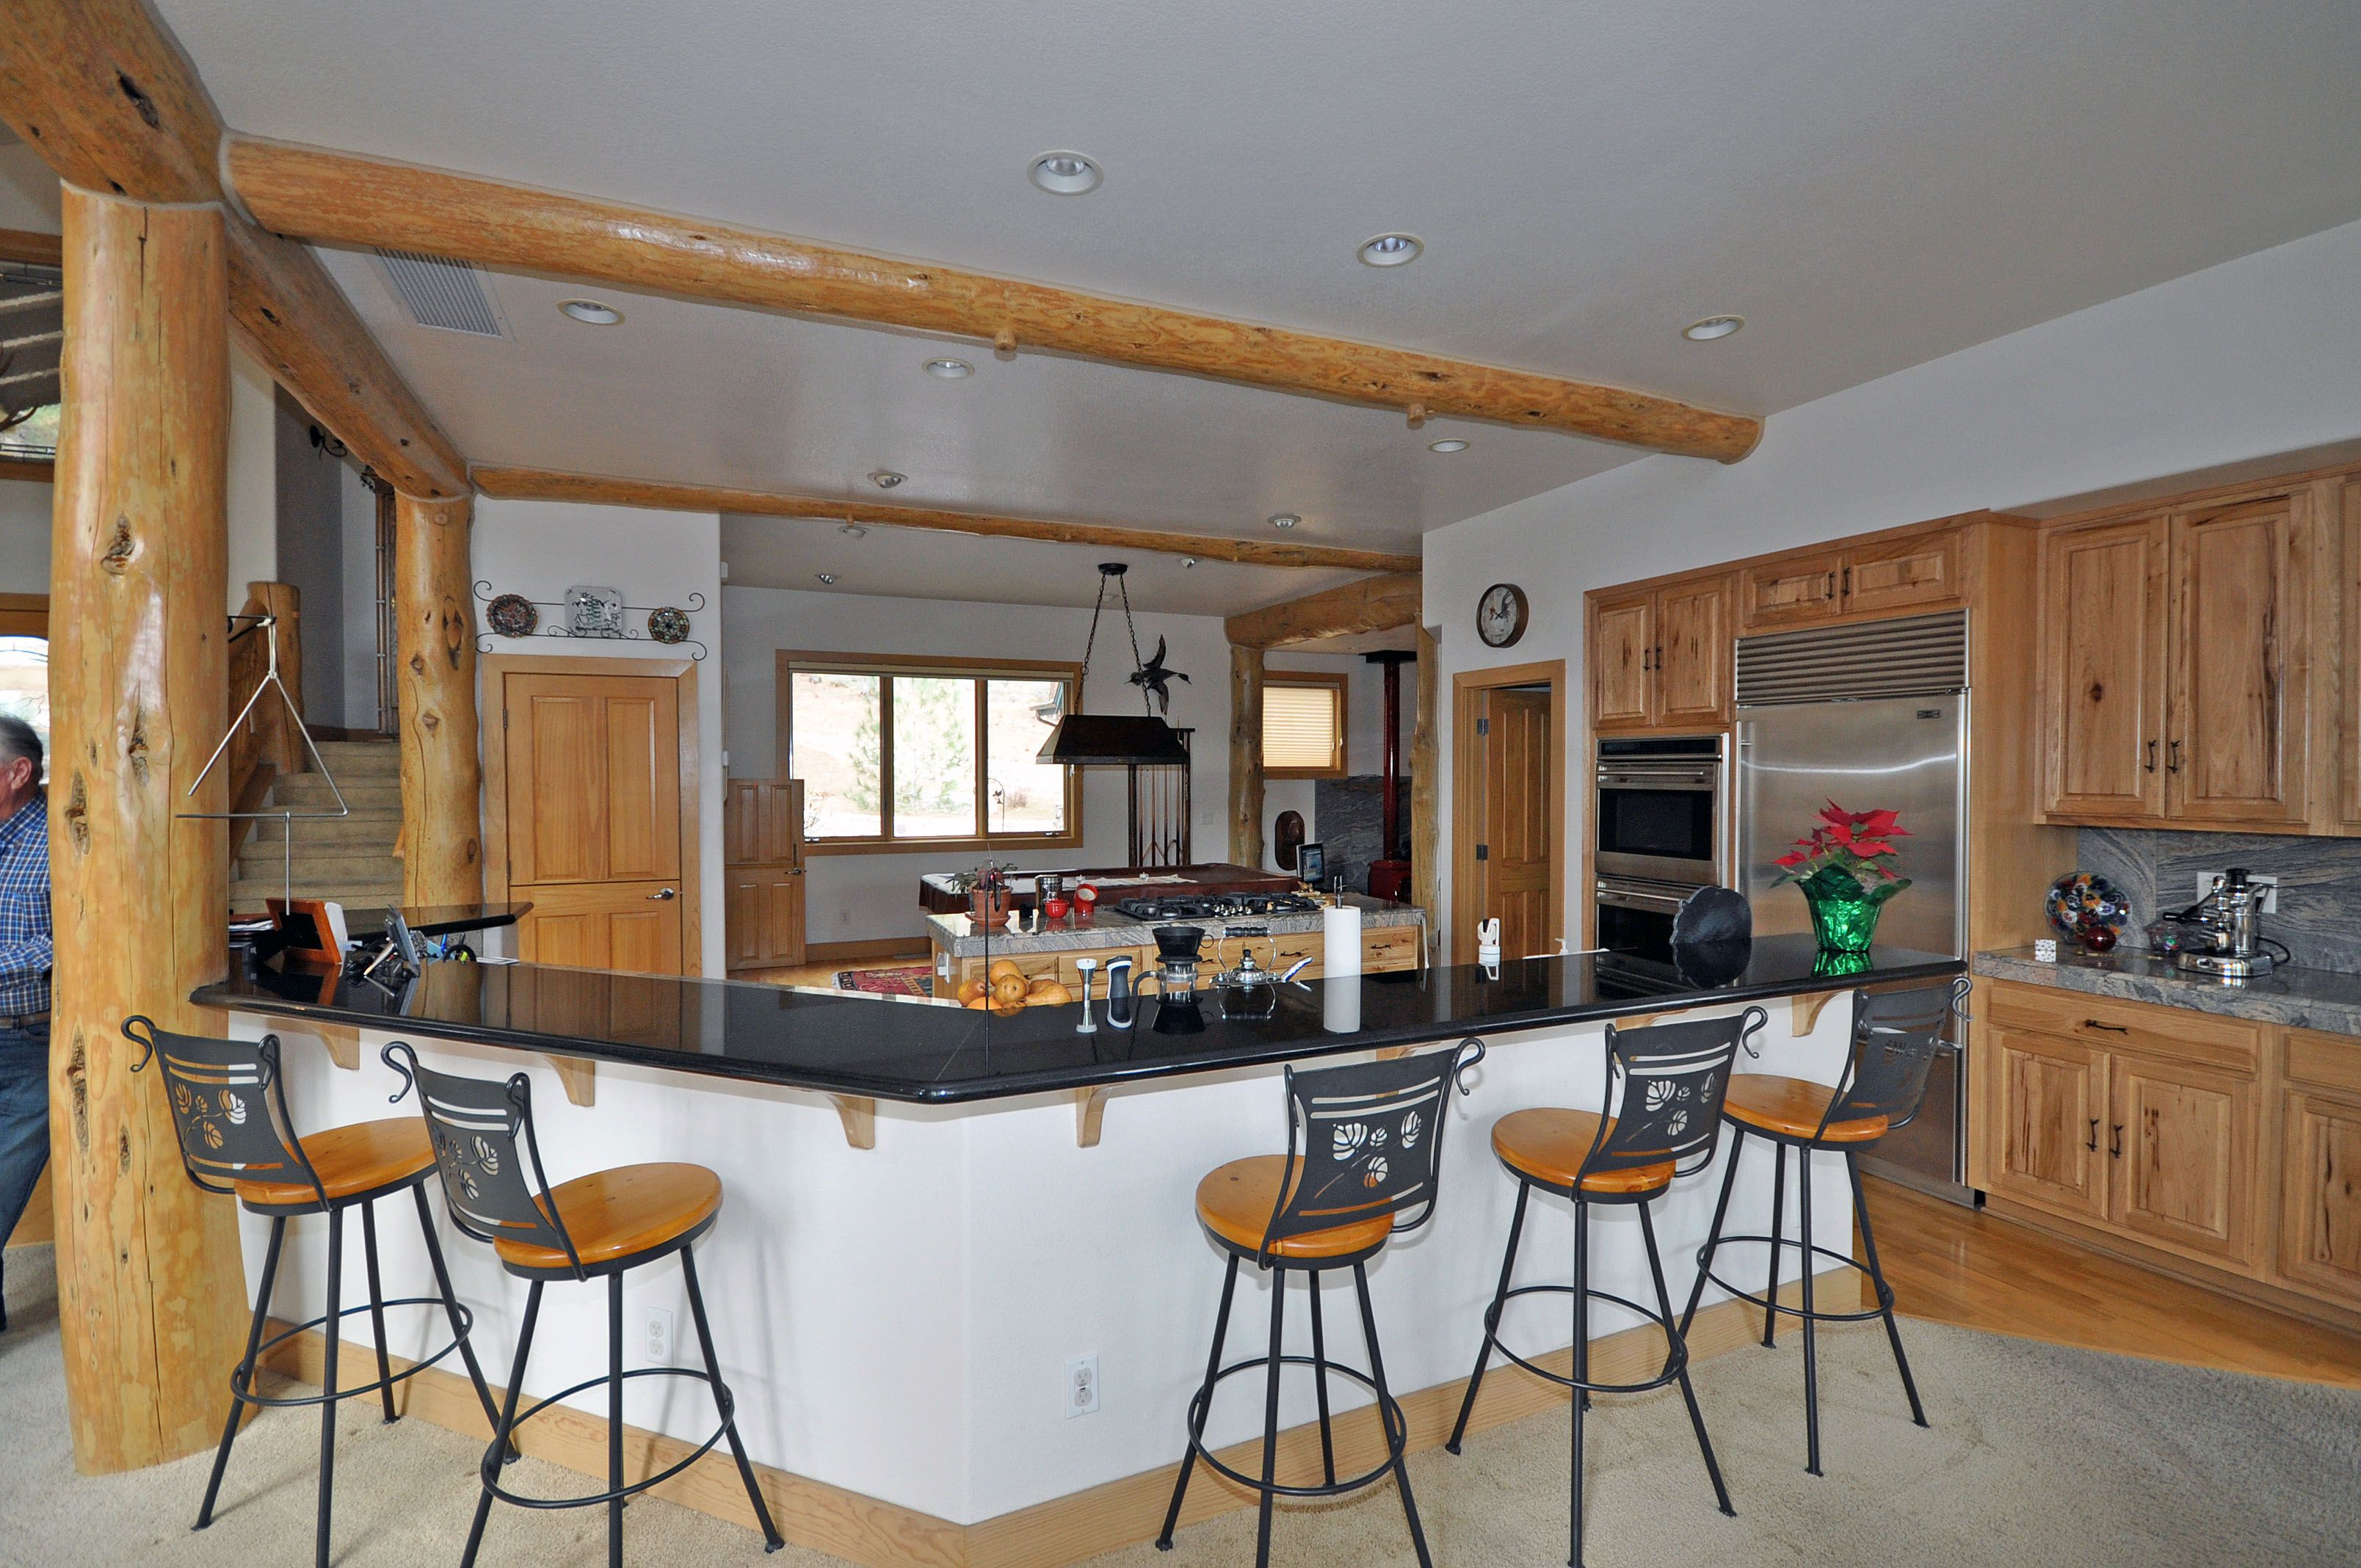 Charmant Appealing White Kitchen Island With Stools And Dark Countertop Used In  Rustic Kitchen Using Log Pillars